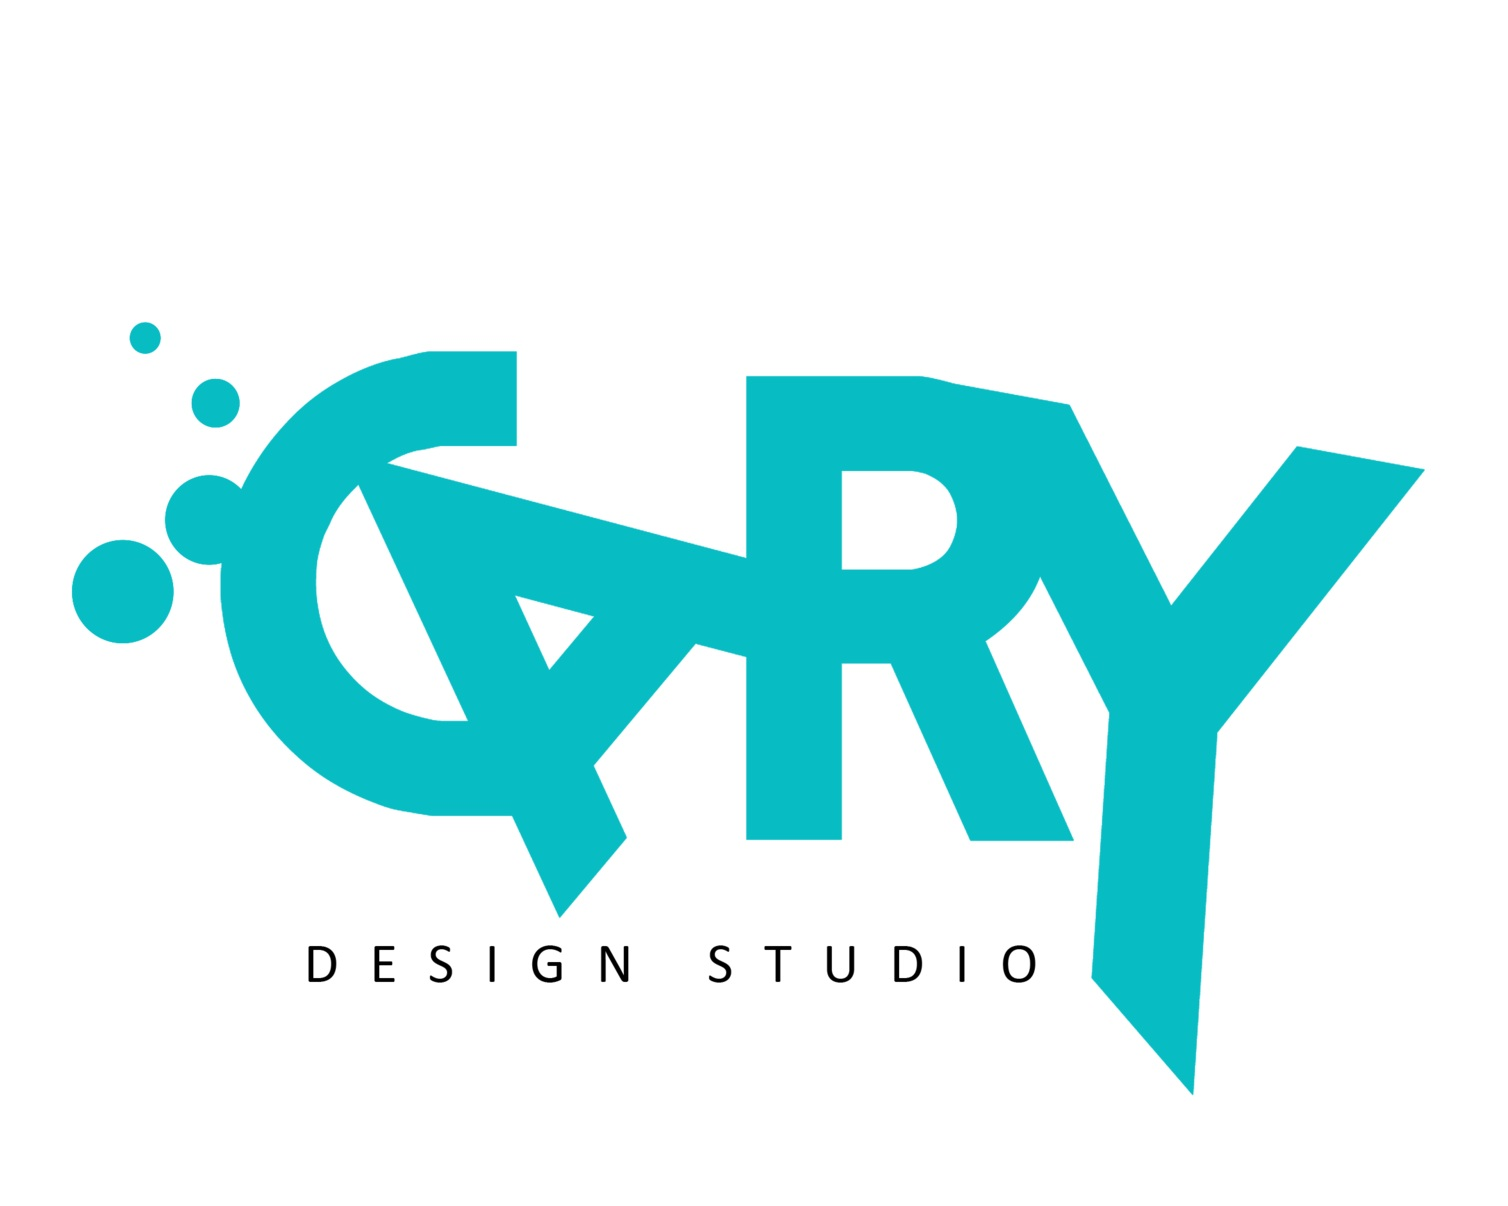 DotCary Design  is a visual design company creating custom content through the forms of graphic design and visual arts.